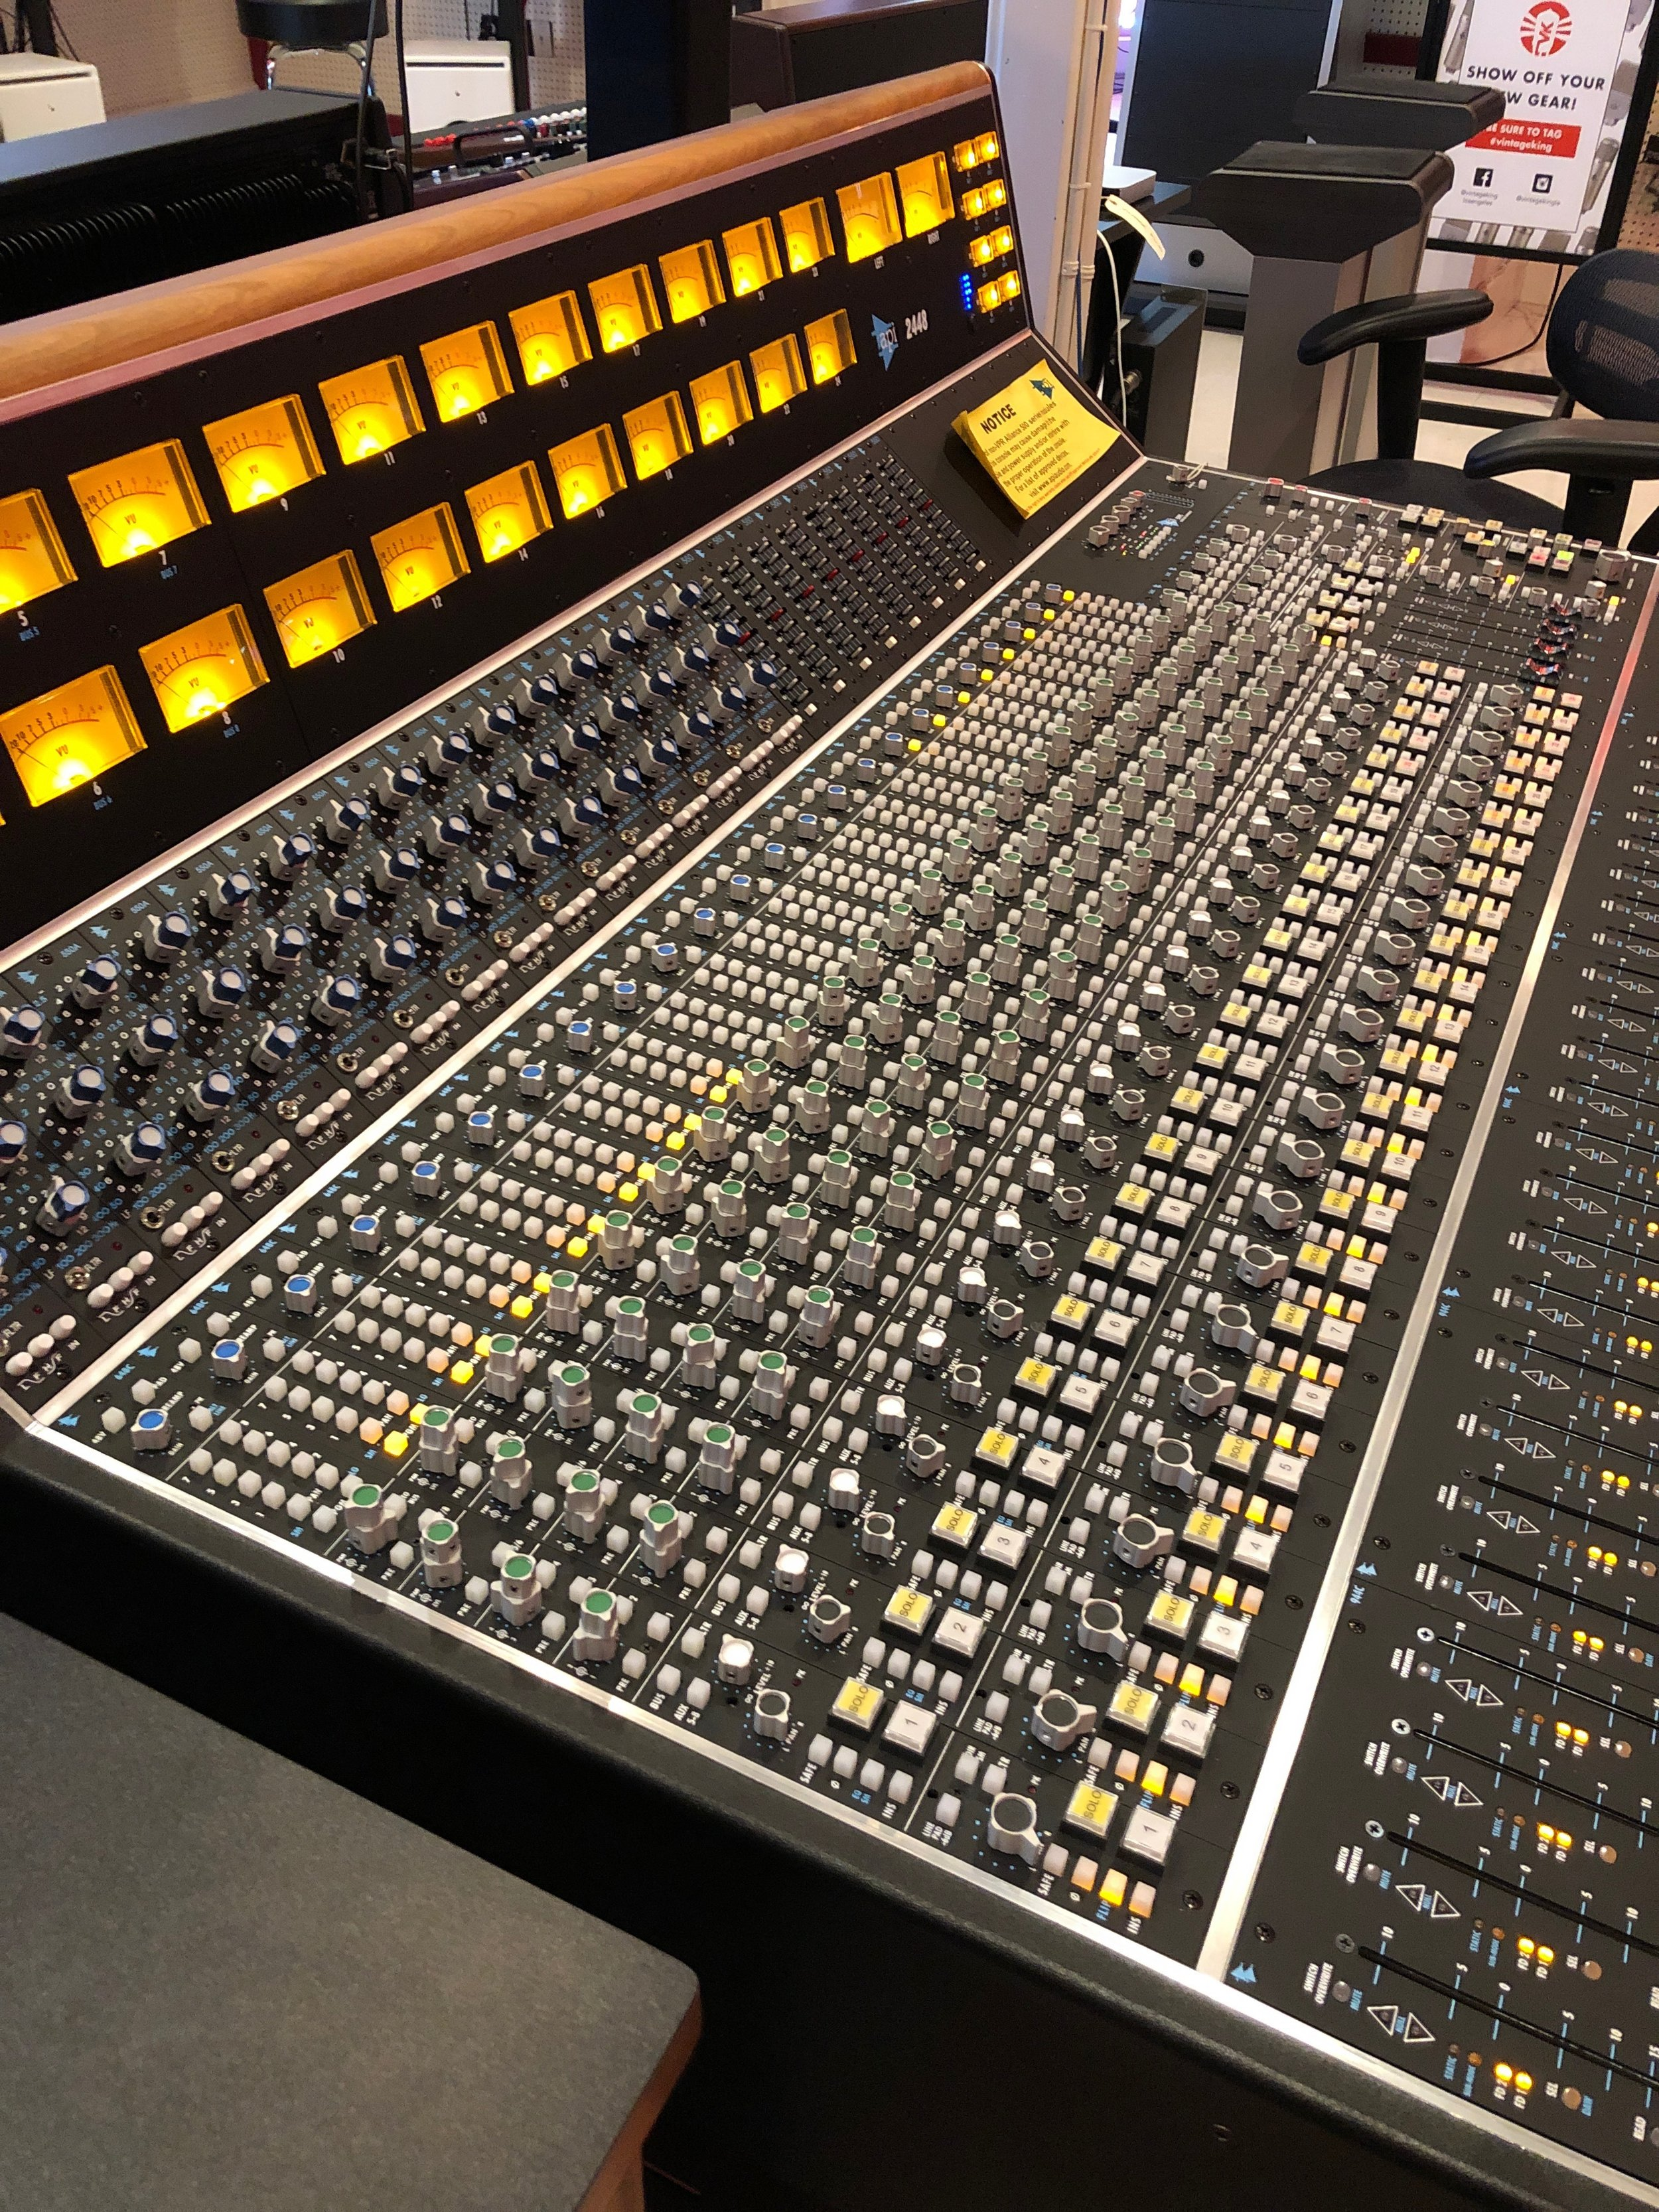 In the past few weeks I also made the mistake of learning about the new    API 2448   . We currently have a 32 channel API 1608 and the plan has been to put that in the new studio 1. We typically use half our console for mic lines / front end and half for pro tools returns. The new 2448 is an inline design, meaning it has 2 input paths per channel, so we could have pro tools outputs directly above mic lines and a 32 channel console would actually yield us an additional 16 mic lines to use and an additional 16 line inputs all at the same time. So, now I'm plotting and scheming for ways to save on other equipment, current equipment we could sell and places in the construction budget where we might still find some savings. Of course the lead time on one of these consoles from API is 3-4 months, so if we want a console when the doors open we need to get on the list! More info on this to come, but if anyone is looking to buy an excellent condition, practically new API 1608 let me know!